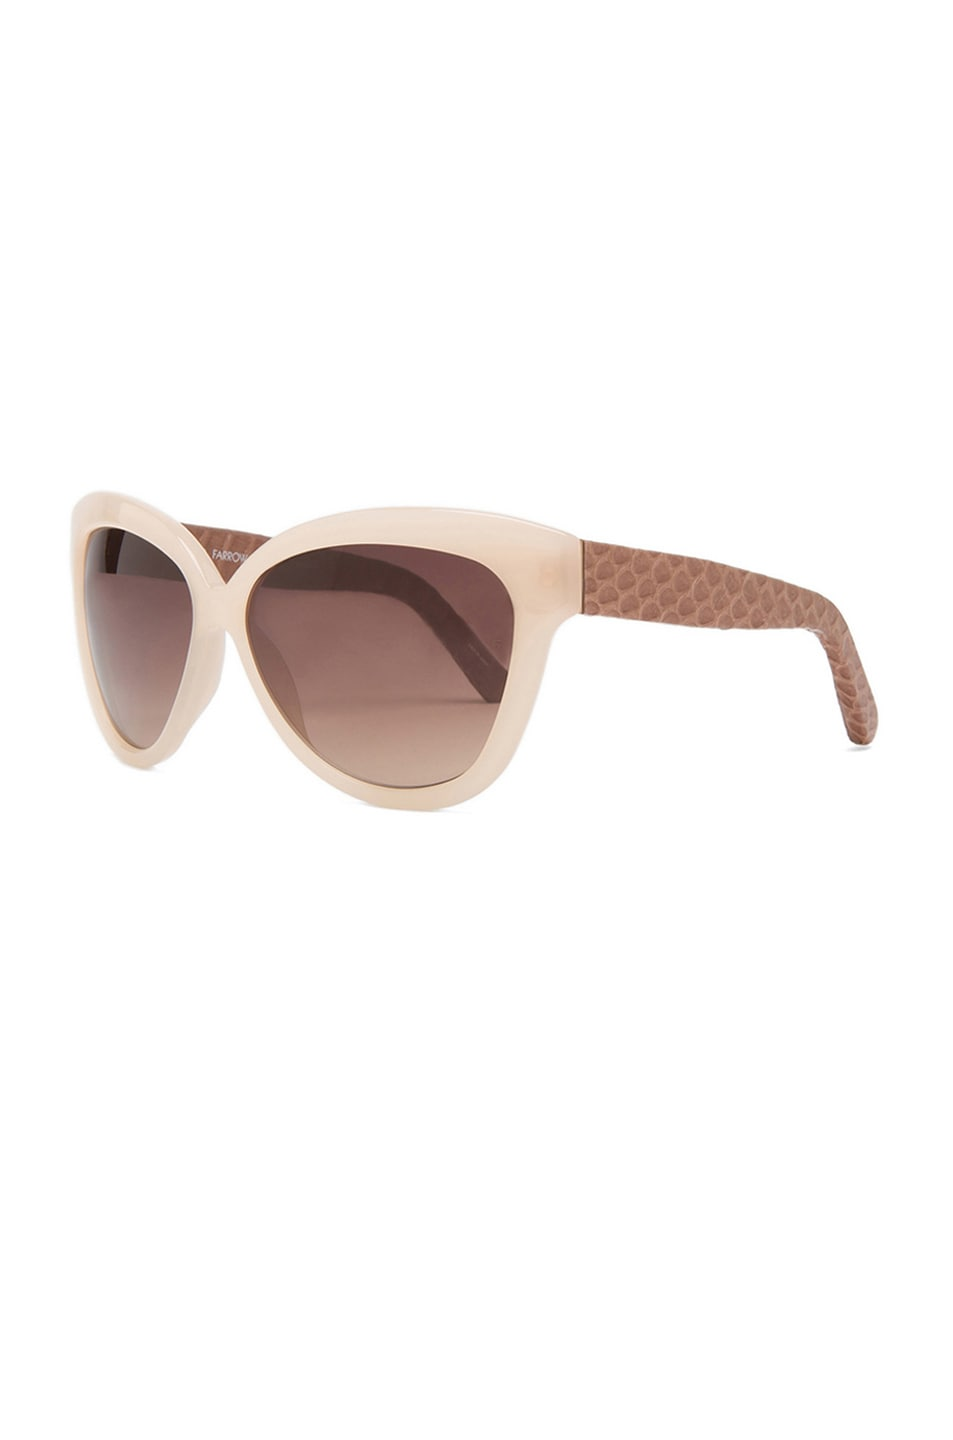 Image 2 of Linda Farrow Curved Square Polarized Sunglasses in Taupe